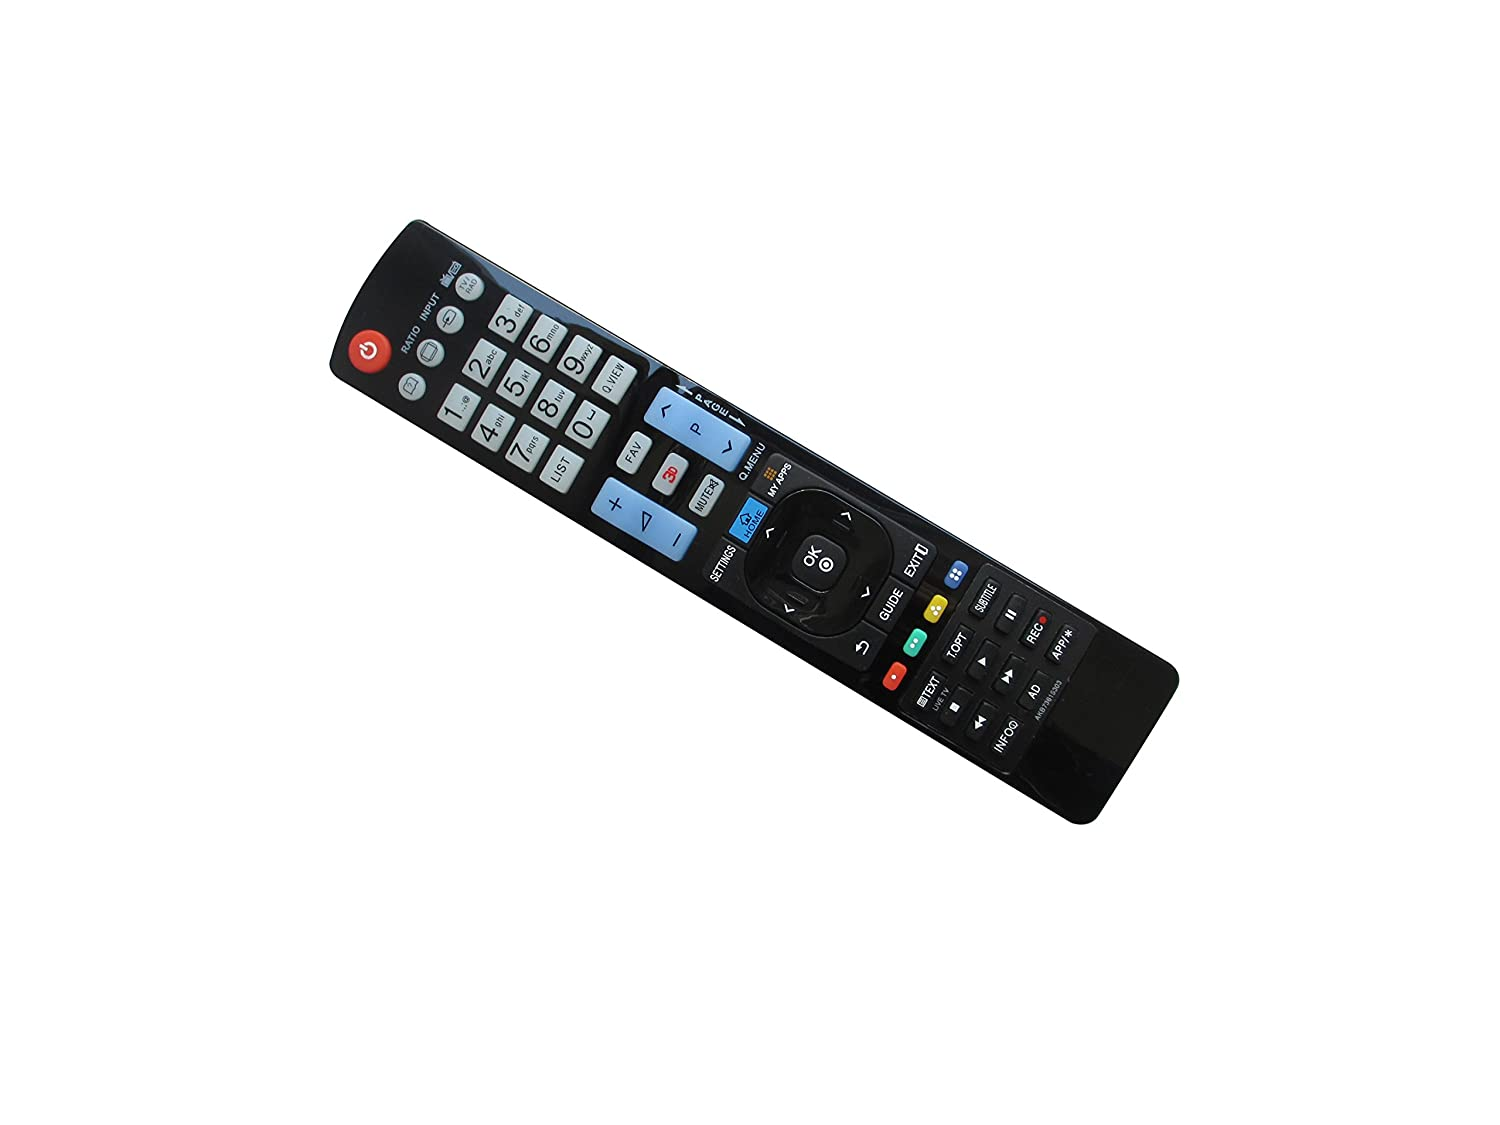 Replacement Remote Control Fit For LG AKB74115501 AKB73615319 42PG10 42PG20 42PG20C Smart 3D Plasma LCD LED HDTV TV